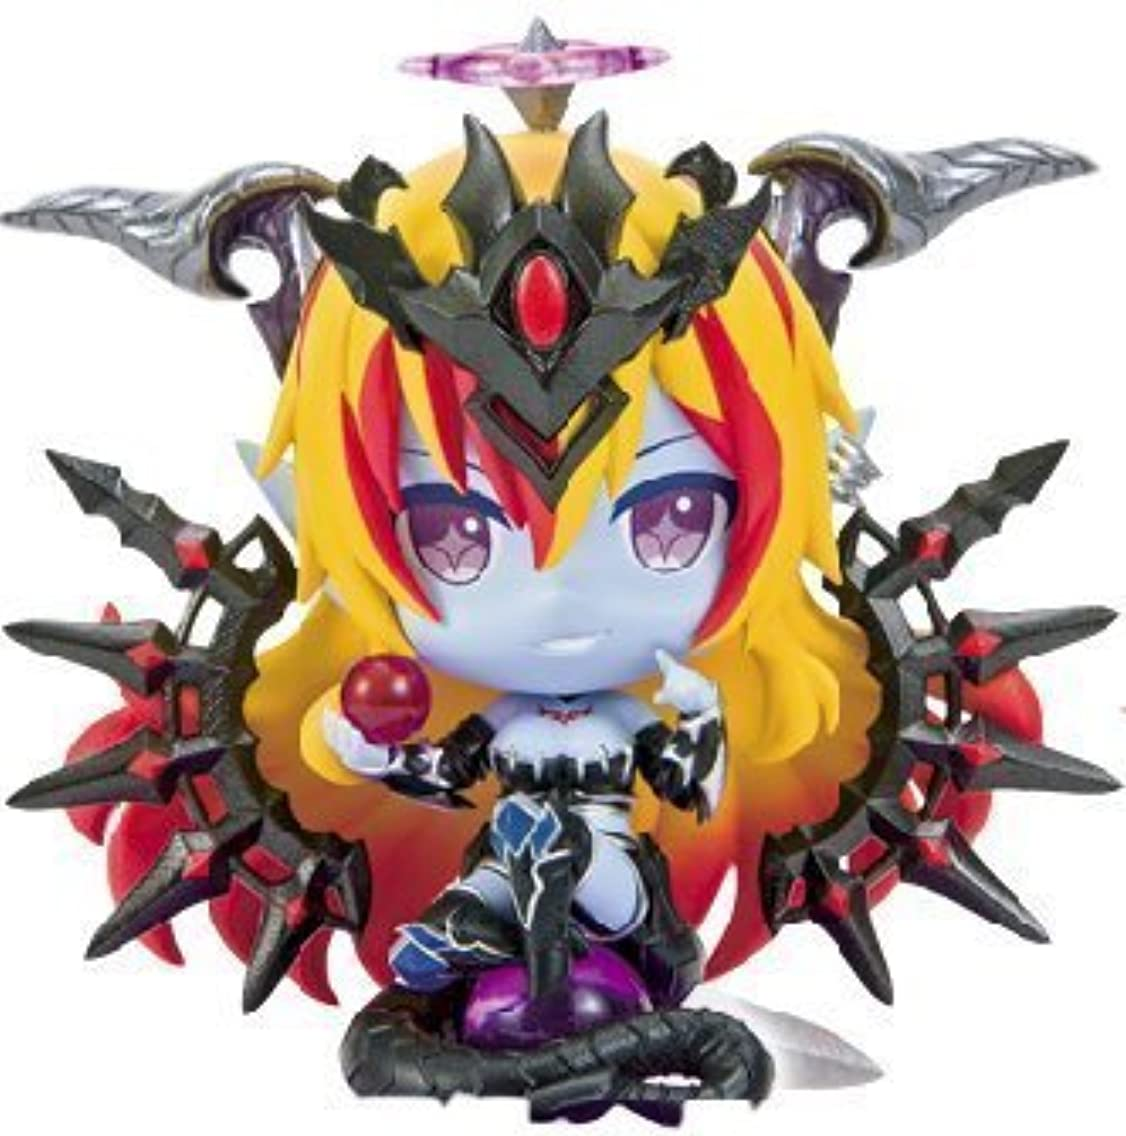 Puzzle & Dragons Divine Queen Hera Pugyutto Chibi Figure Collection Vol.6 Mini Pugycolle Character and PAD PND P&D DQ